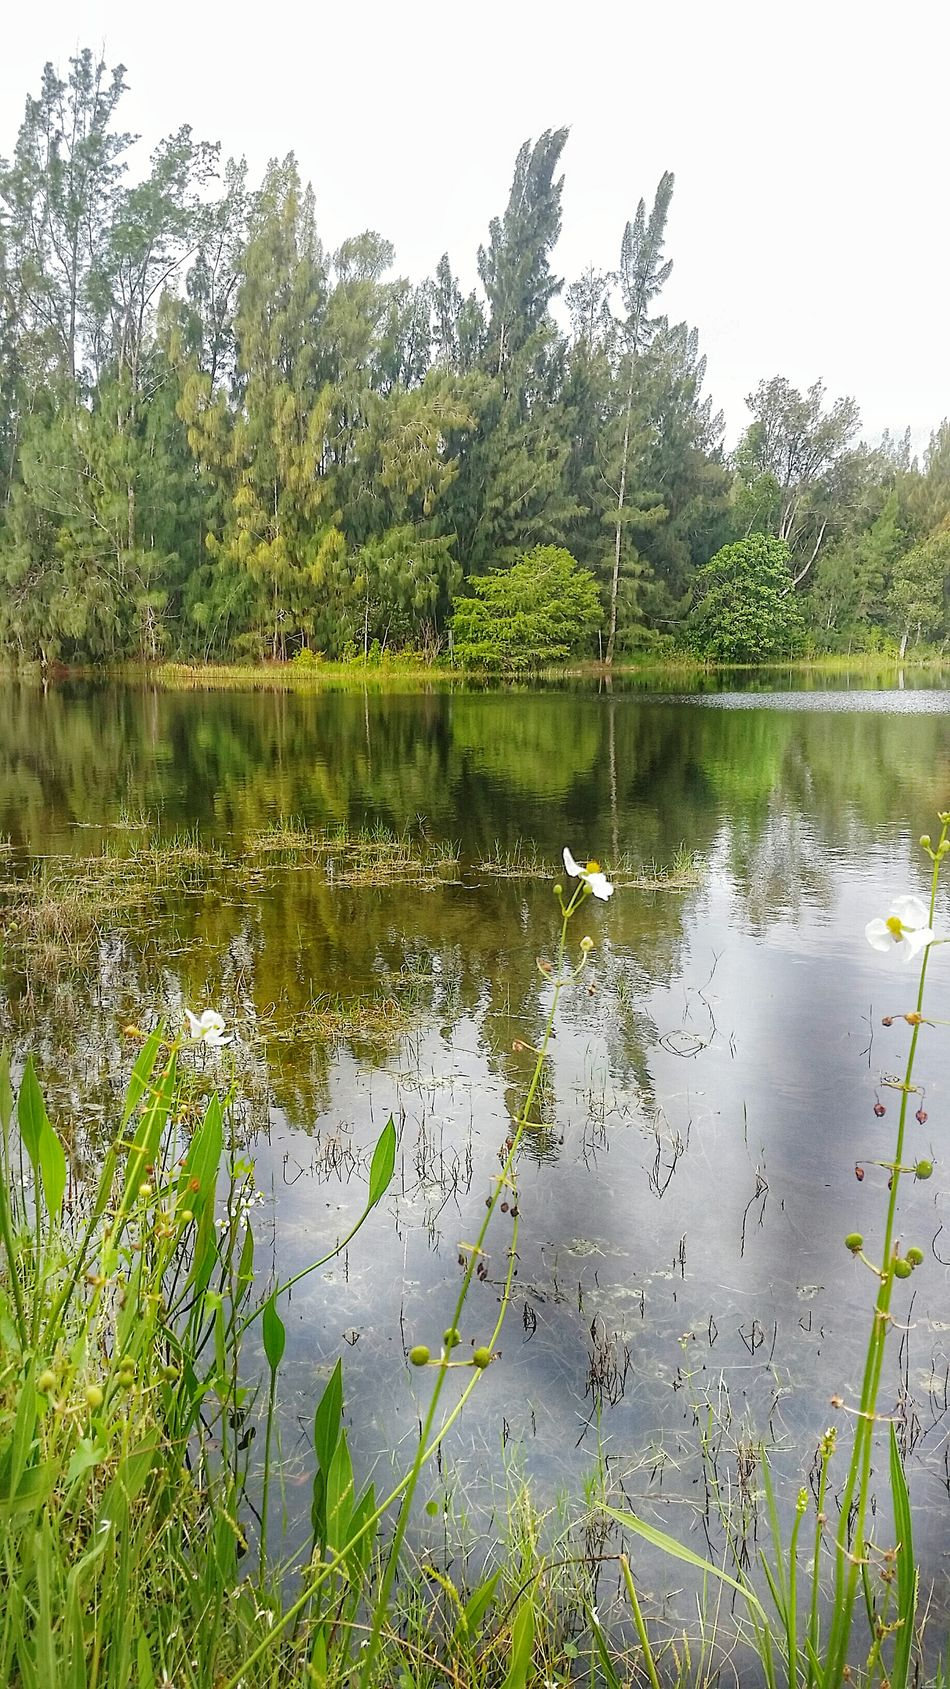 By the side of the lake, waiting for a peaceful day, a bright friend, balm for the soul... Landscape Beauty In Nature Wildflowers Landscapephotography Thoughts And Musings Solitude Landscape Nature Photography [